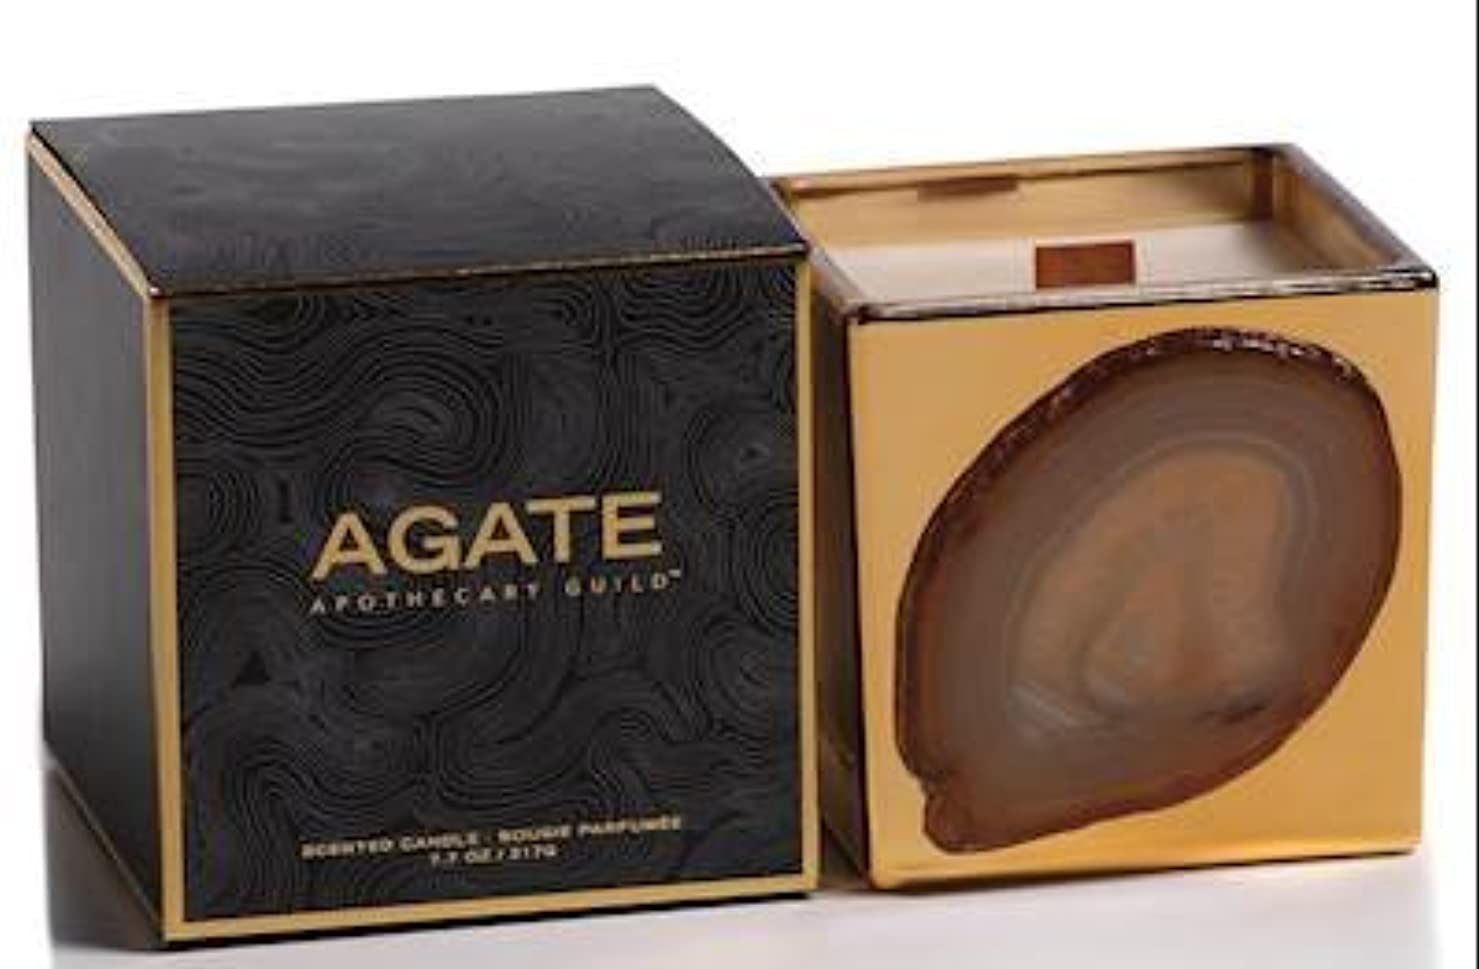 つなぐ柔らかさ遡るZodax Agate Scented Candle Jar 50 Hours Burn Time- Black Currant (217gm / 7.7oz)